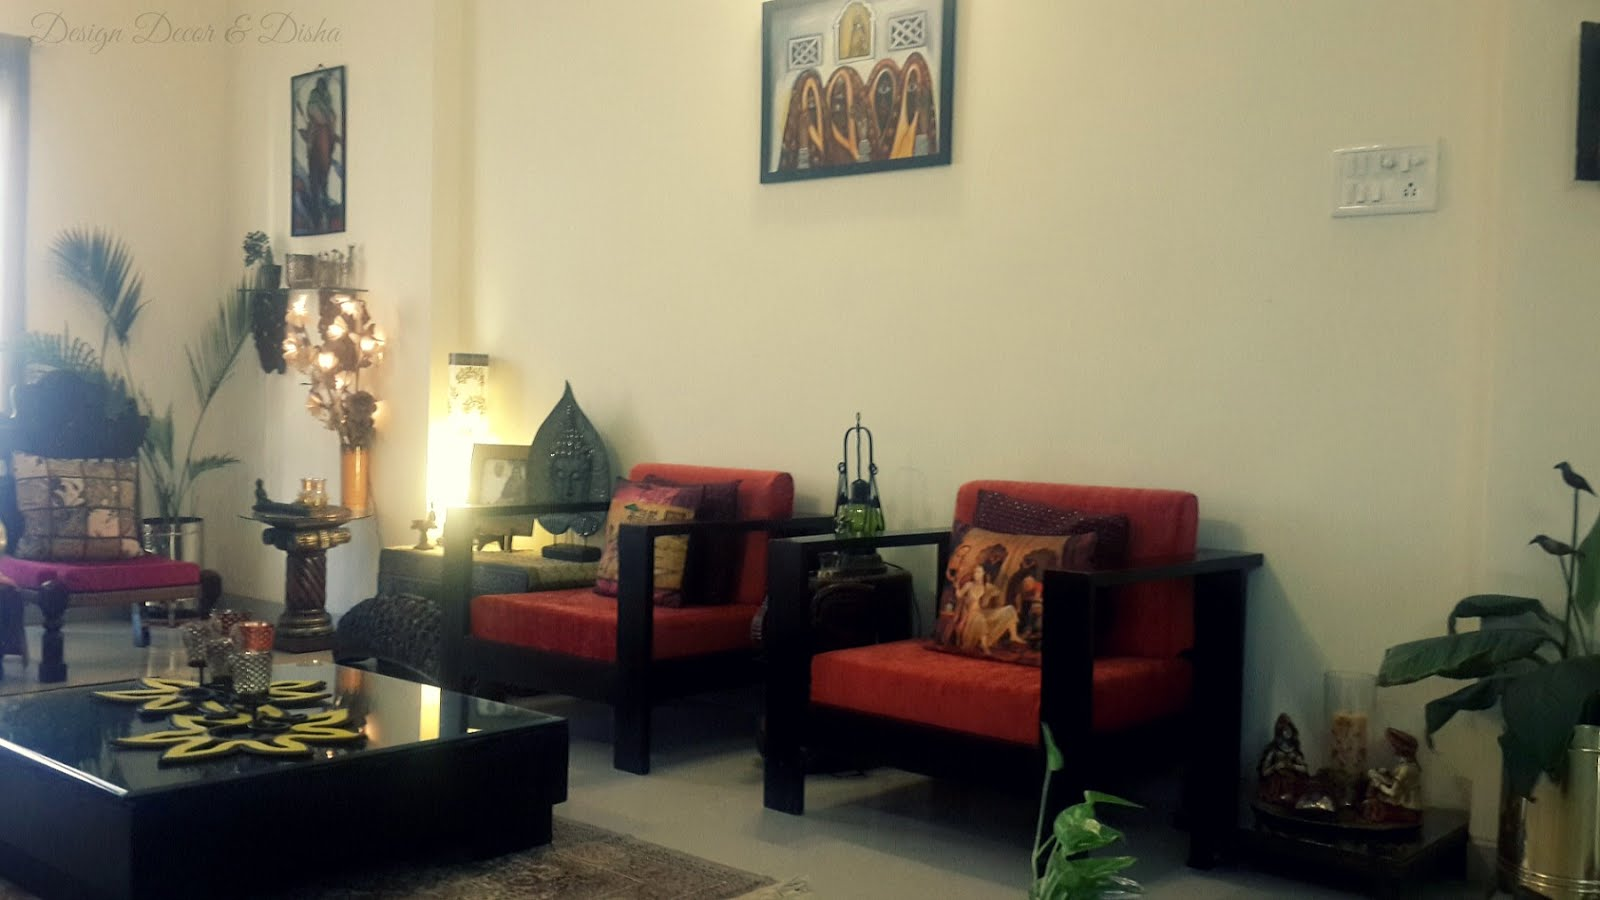 Design decor disha an indian design decor blog home for Living room designs indian style